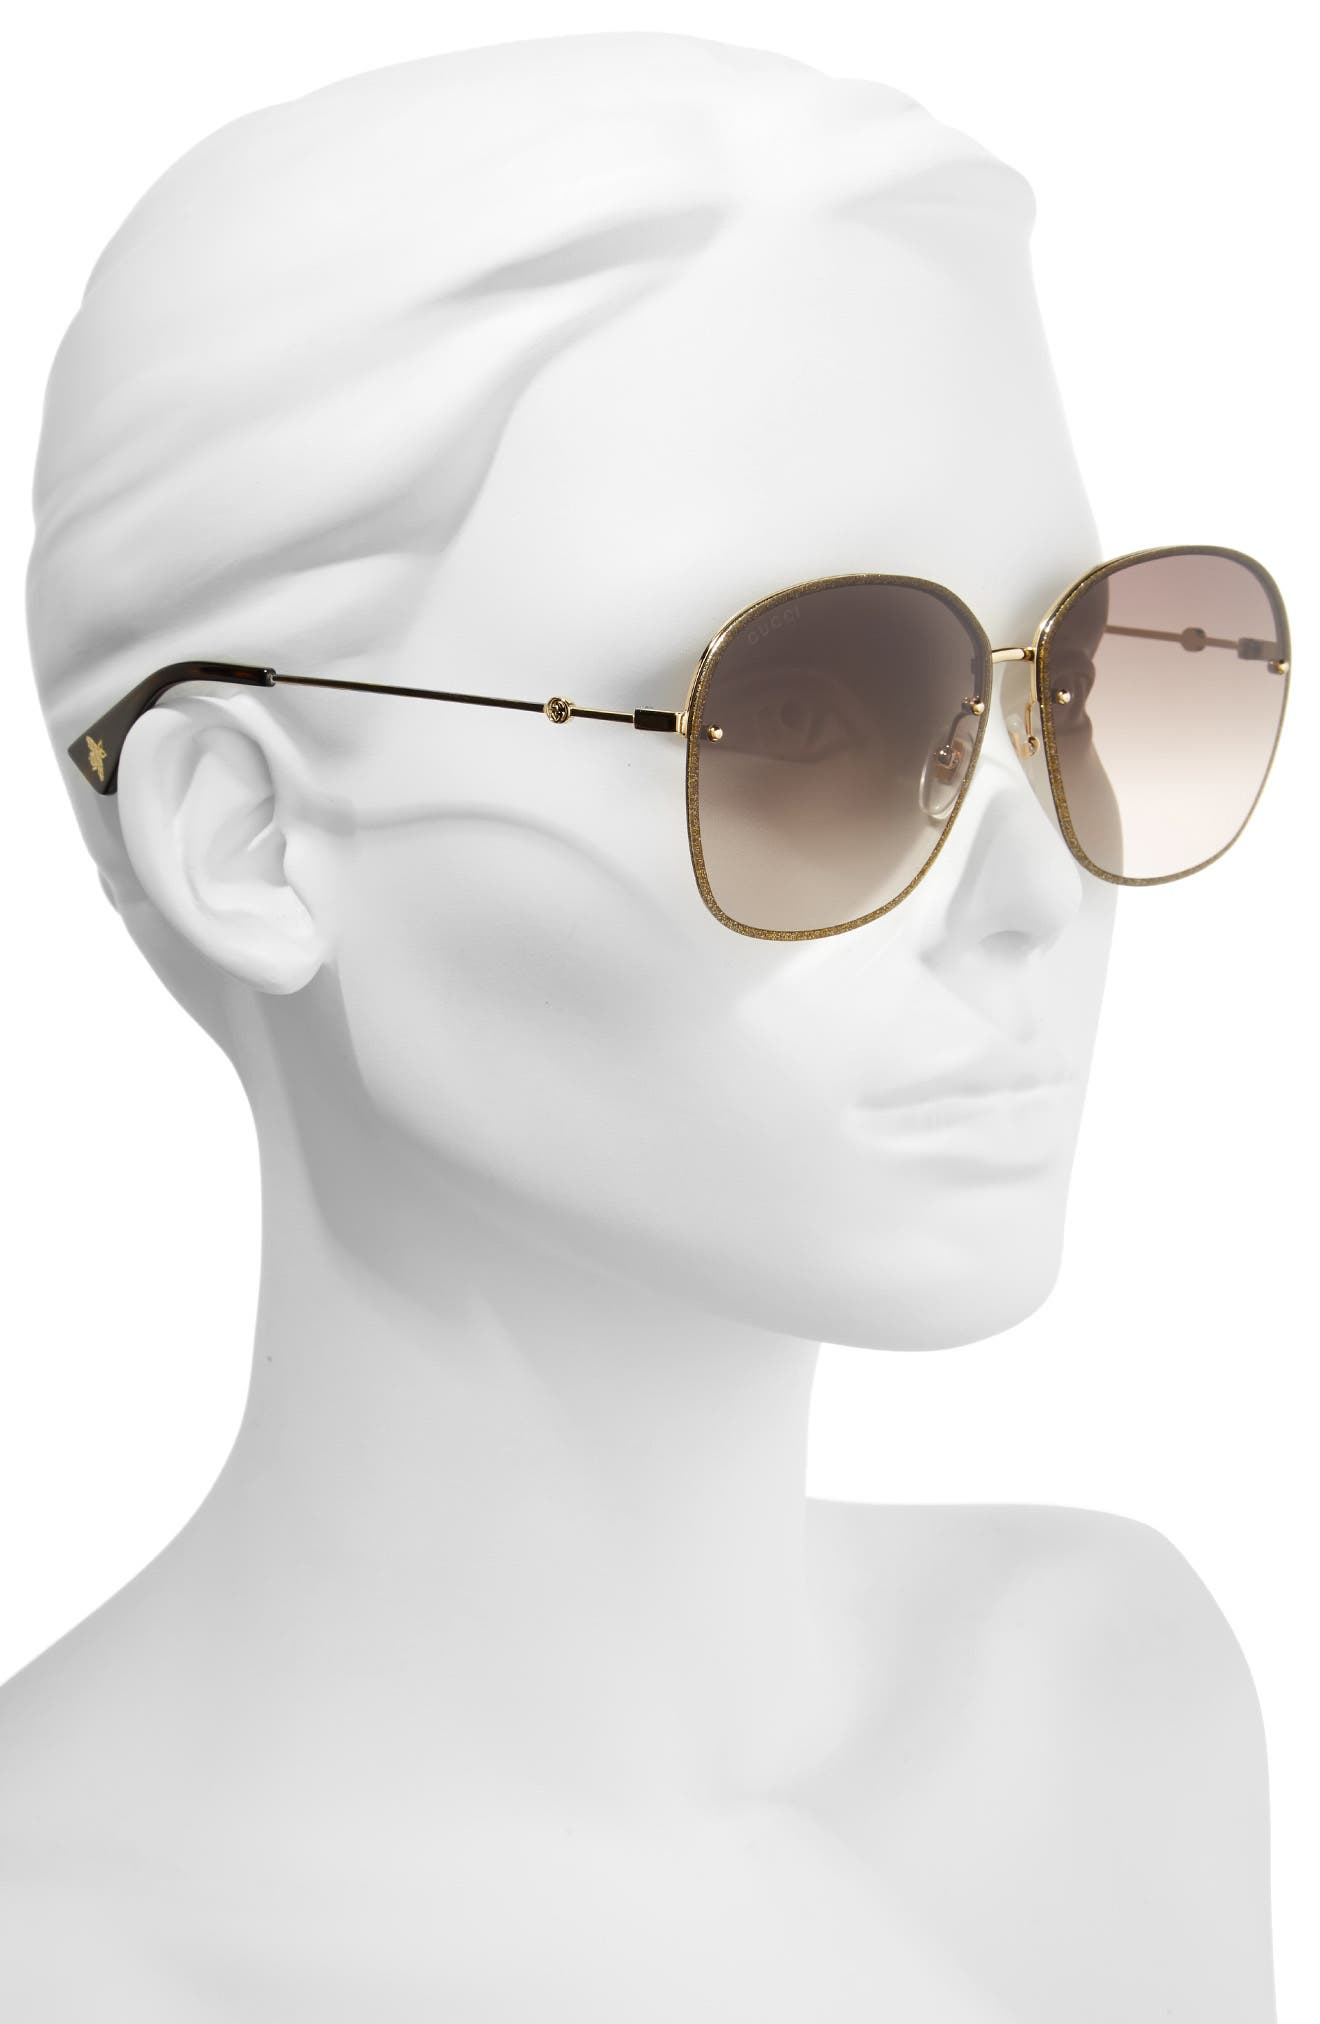 63mm Oversize Square Sunglasses,                             Alternate thumbnail 2, color,                             GOLD/ BROWN